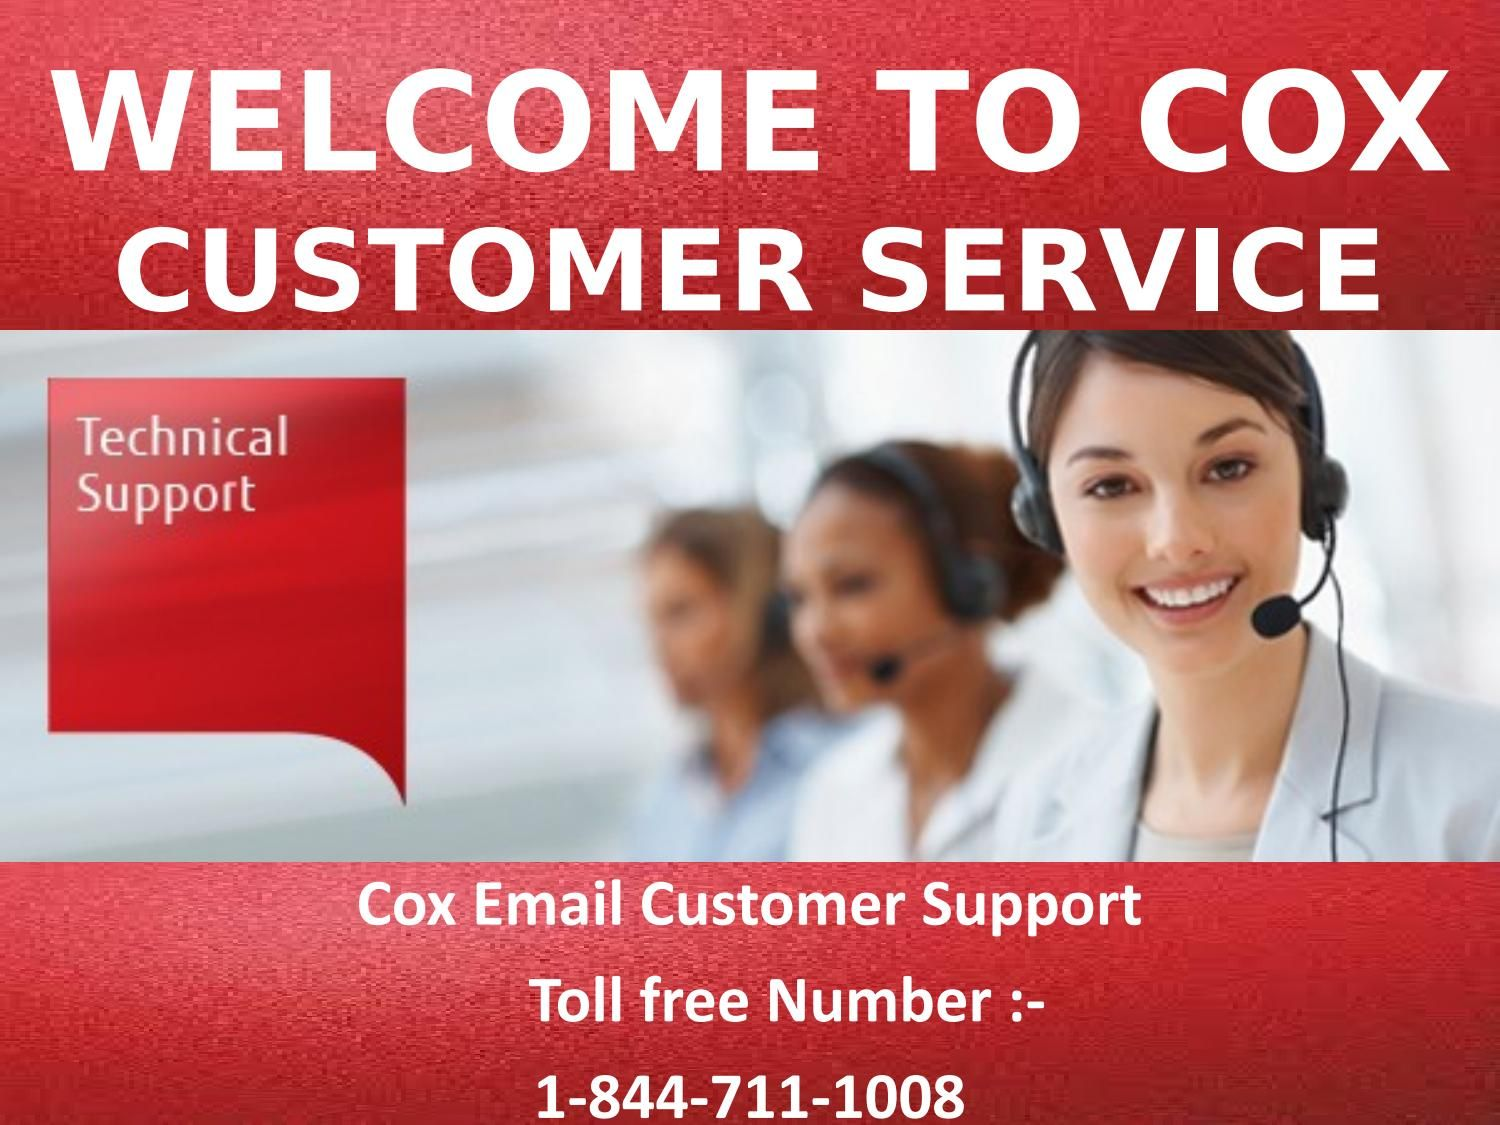 Cox customer service phone number   Customer service, Phones and ...